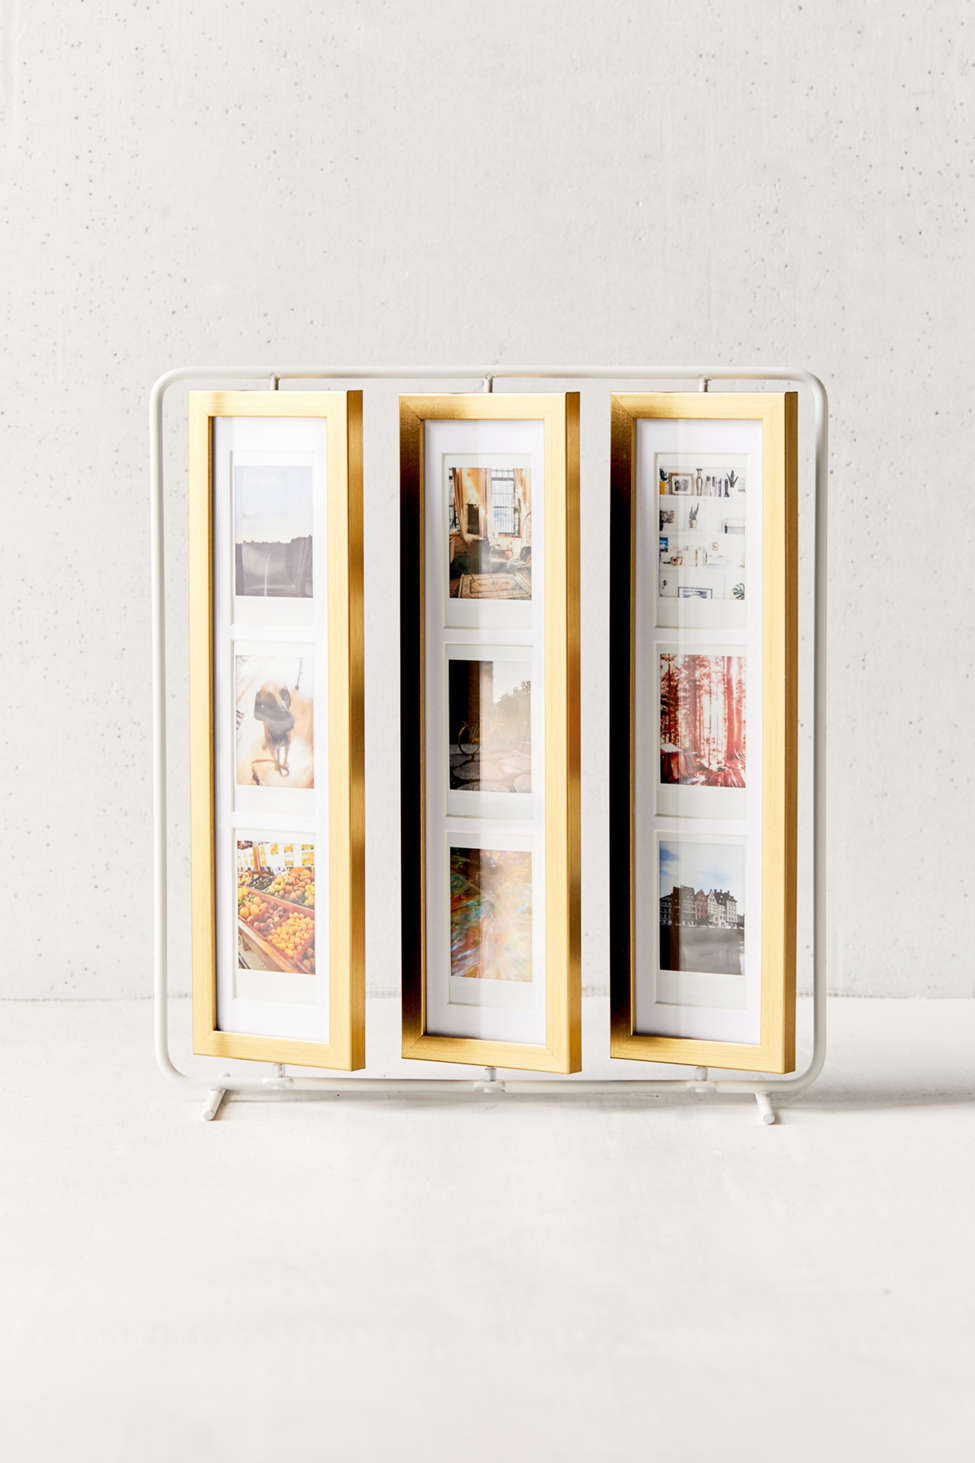 Slide View: 1: Finley Flip Instax Mini Picture Frame + Jewelry Holder